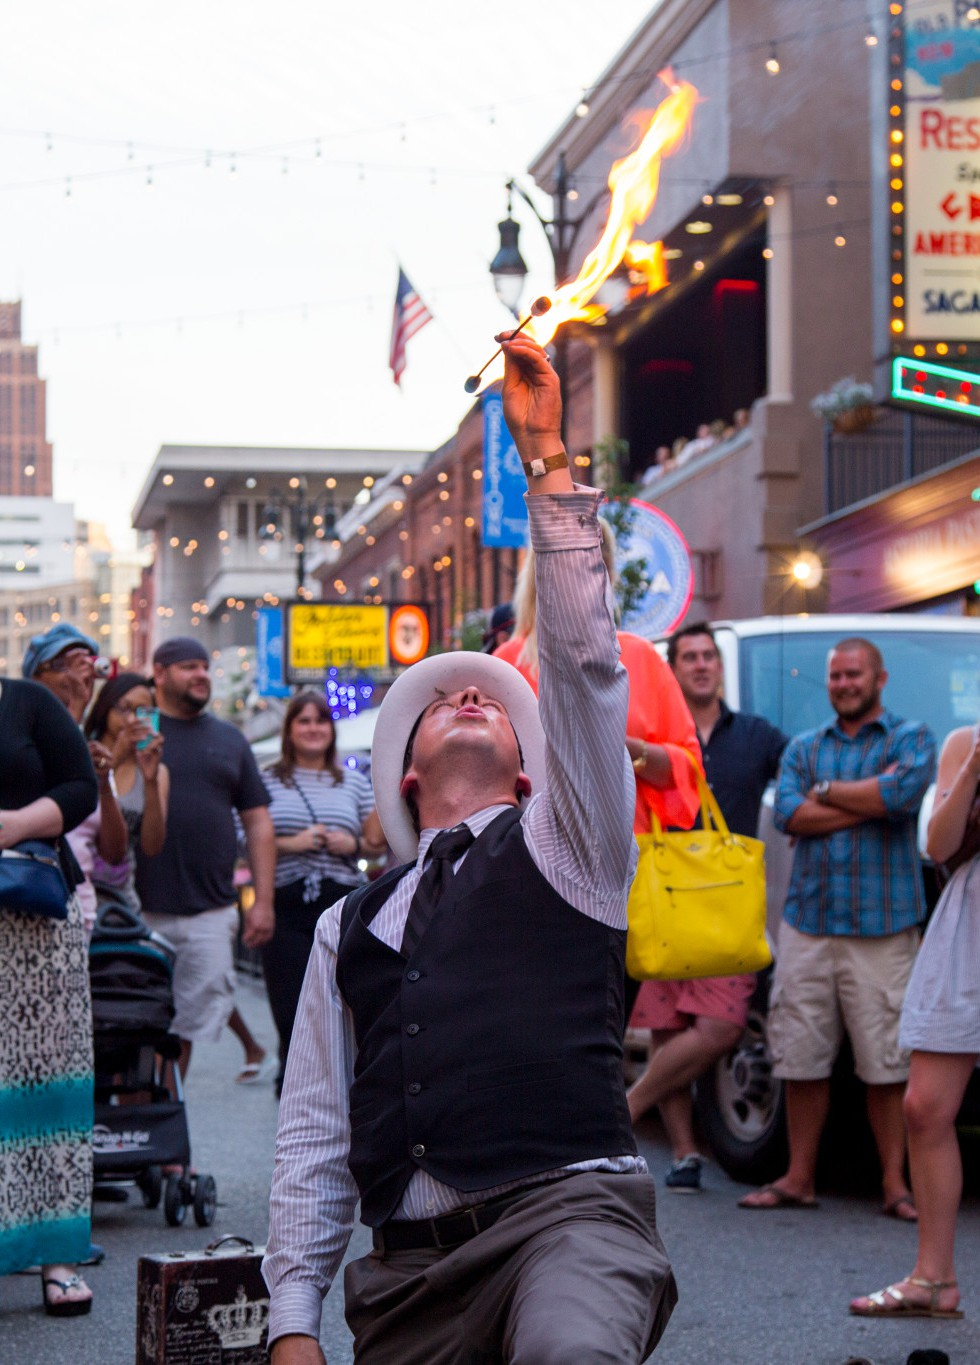 Greektown At Sundown Energizes Downtown Detroit's Nightlife - Opportunity Detroit Blog